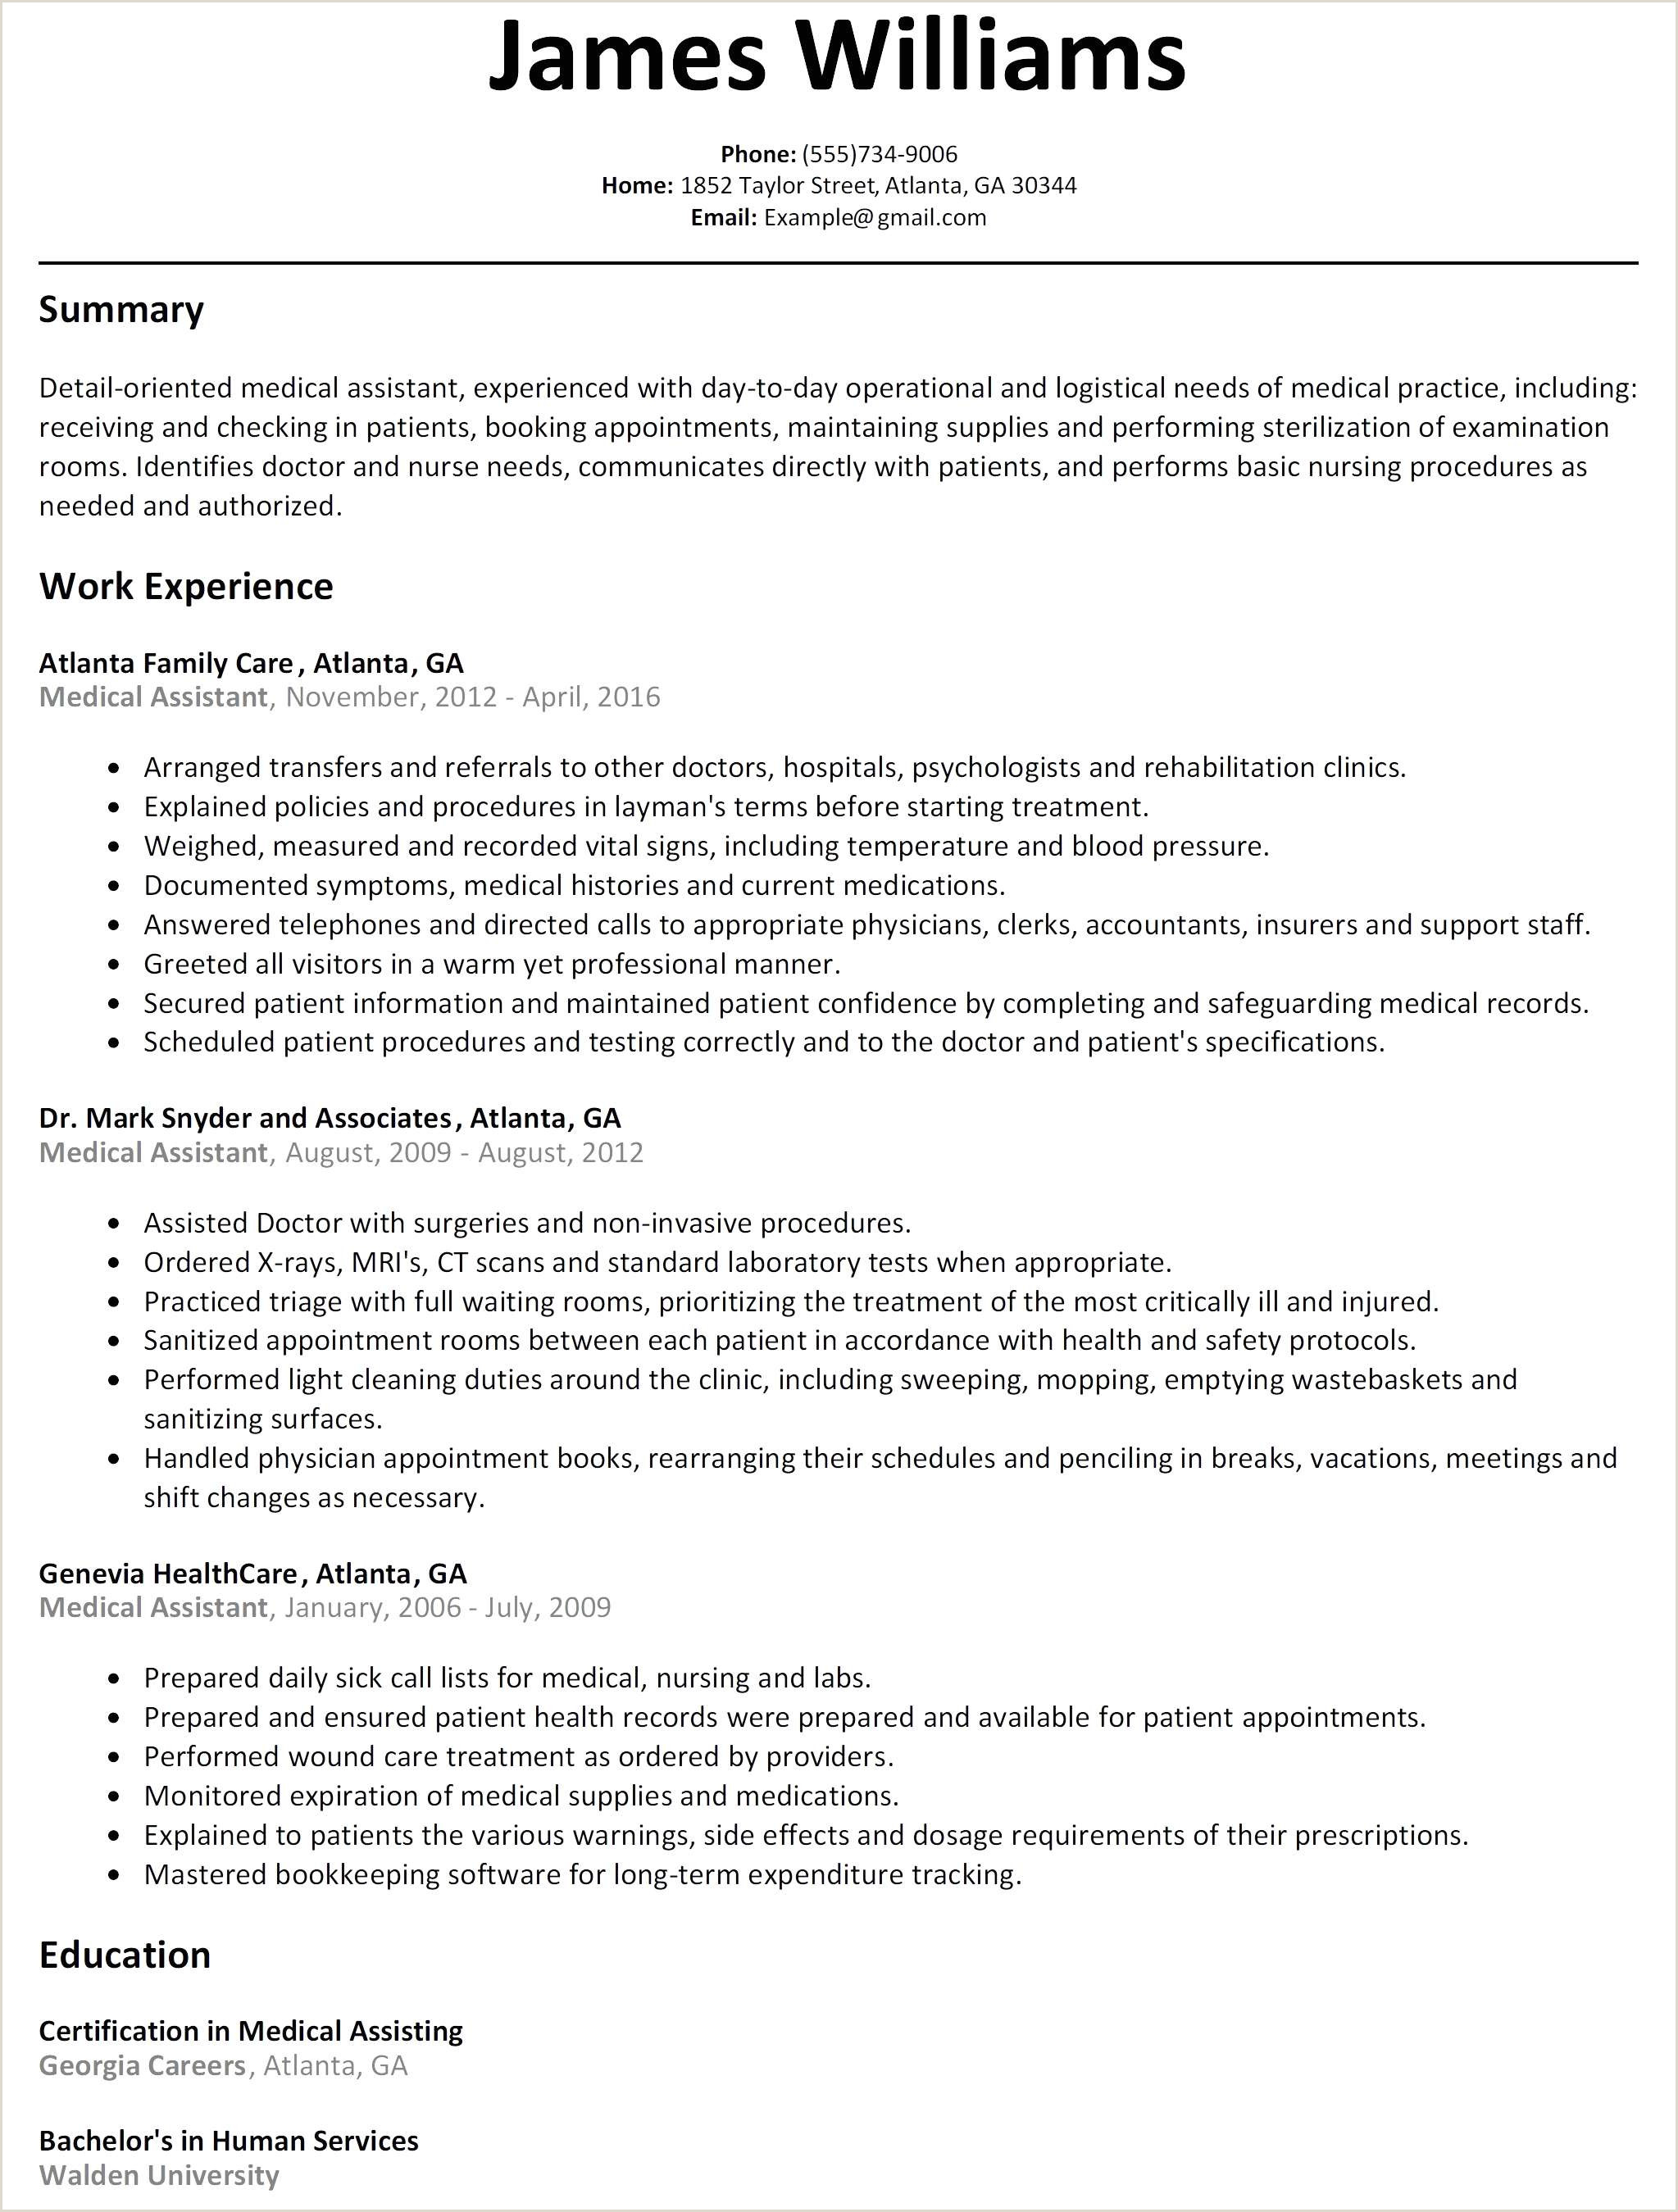 Glassdoor Resume Template Awesome Security Guard Resume